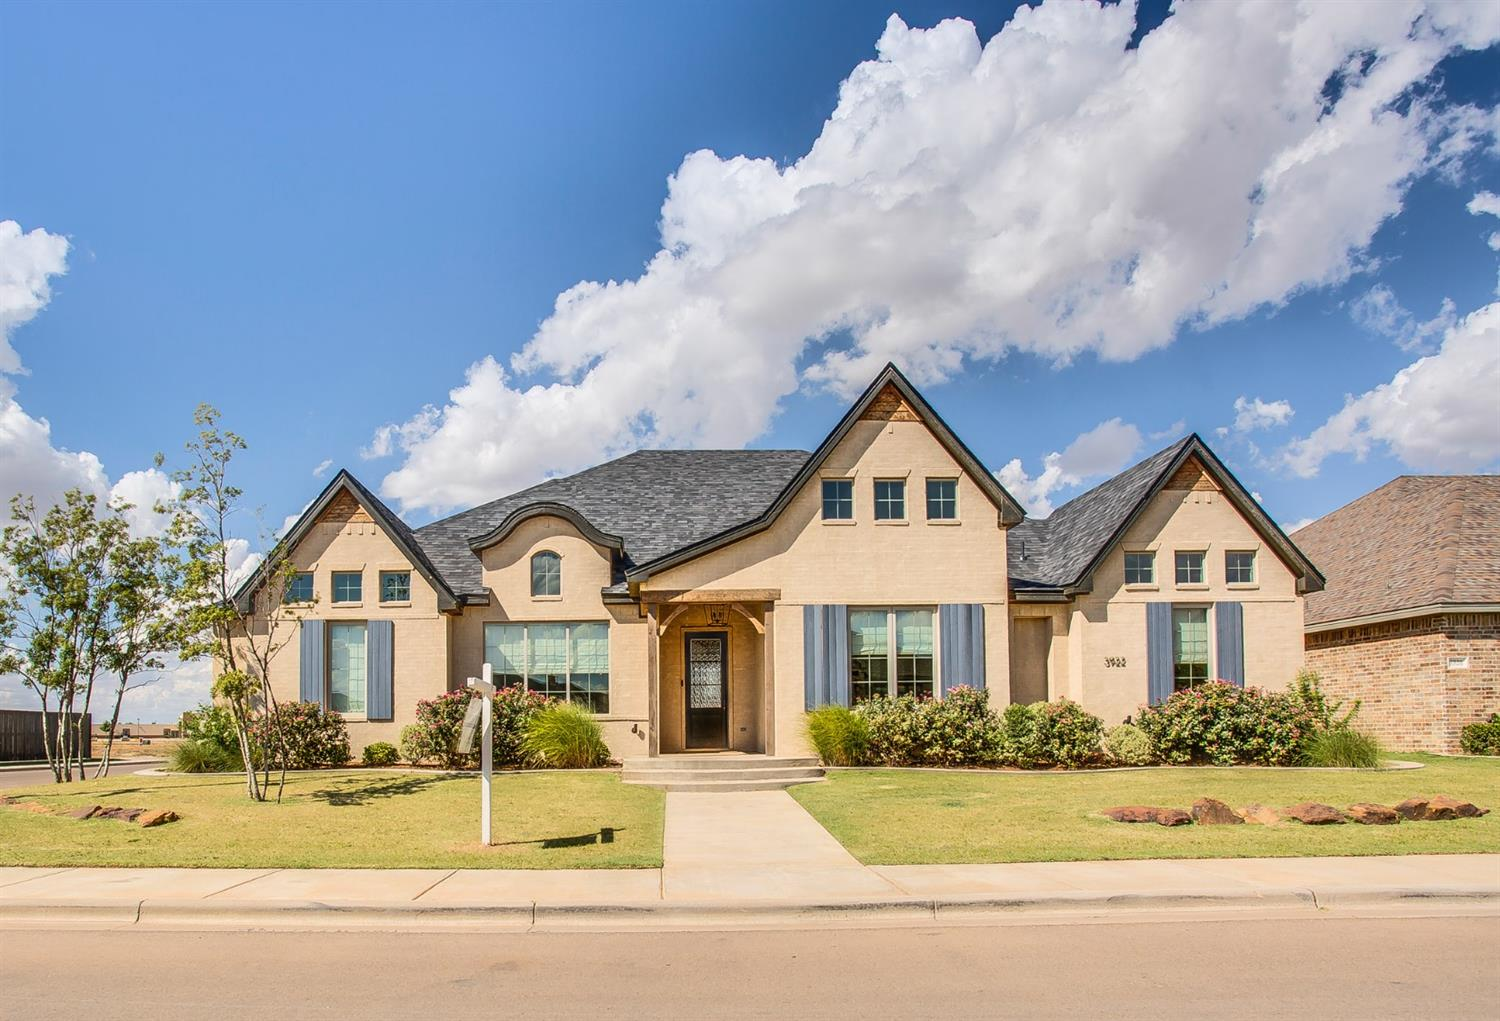 This stunning home, built by award winning Clearview Custom Homes, is in the Enclave at Kelsey Park, in Cooper ISD! This four bedroom, four bath home includes, a spacious open floor plan, gourmet kitchen and living room perfect for entertaining, a separate dinning room, isolated master suite with large walk in closet, over sized garage, and mudroom with lockers.  This is a house you would be proud to call home!